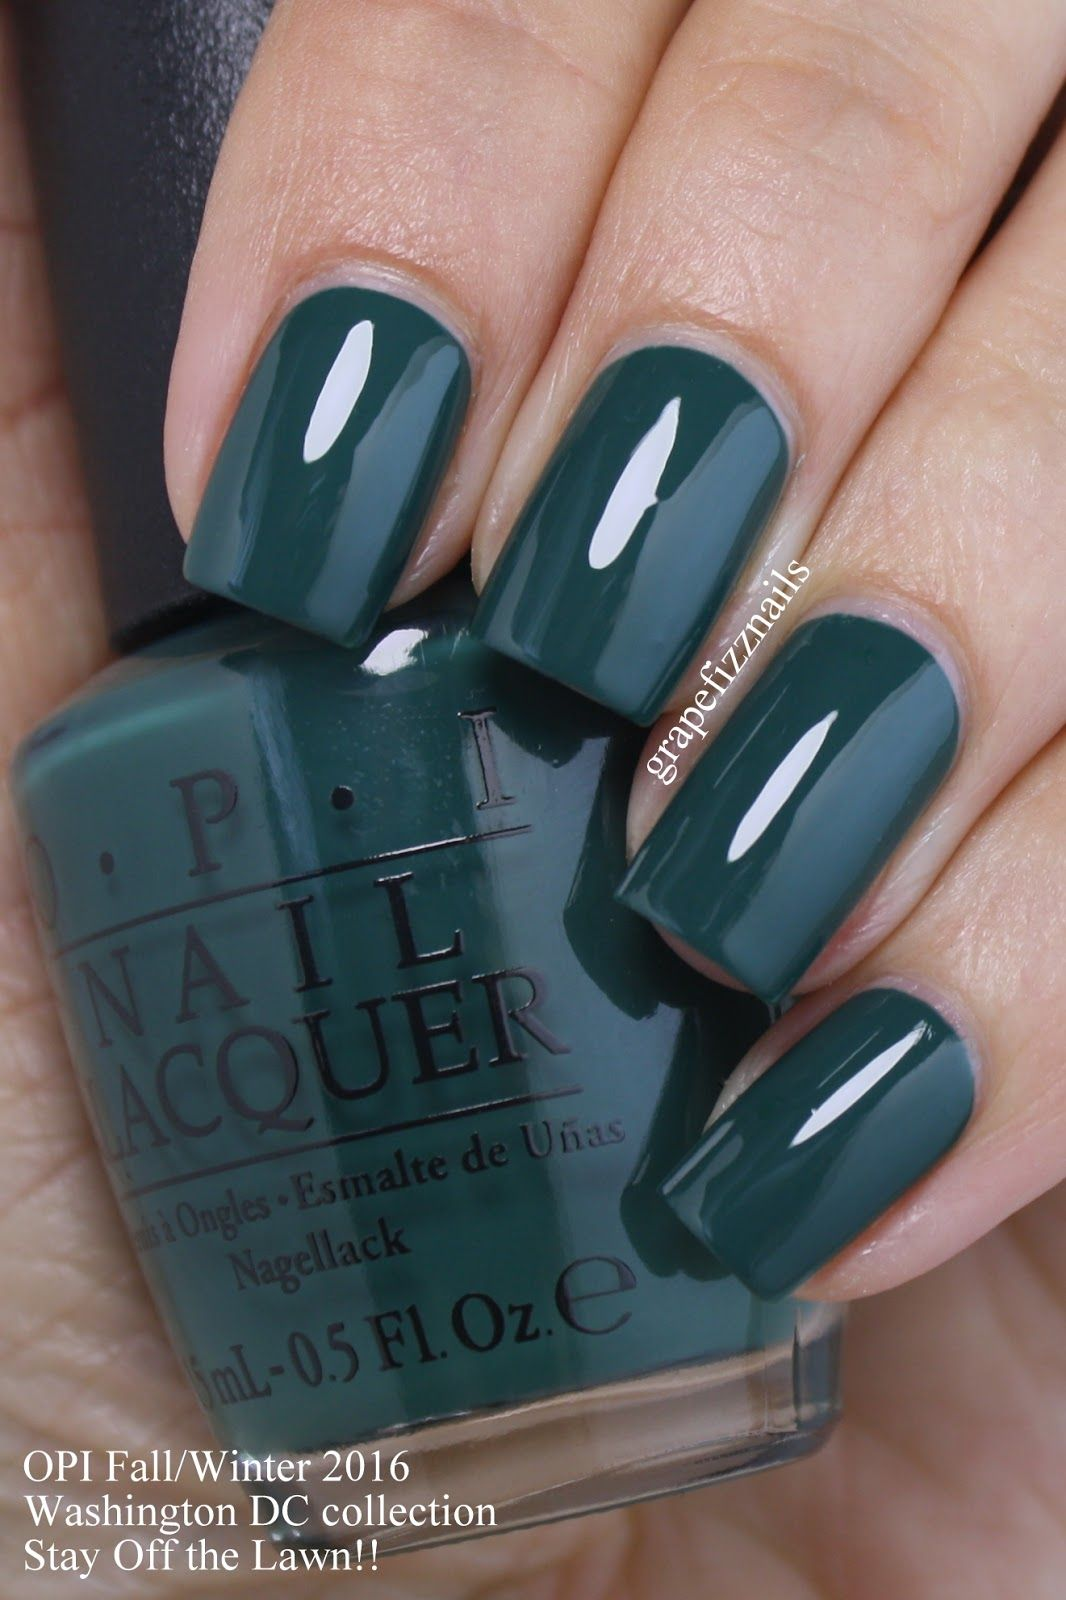 Nagellak Op Kleding Grape Fizz Nails Opi Washington Dc Collection For Fall Winter